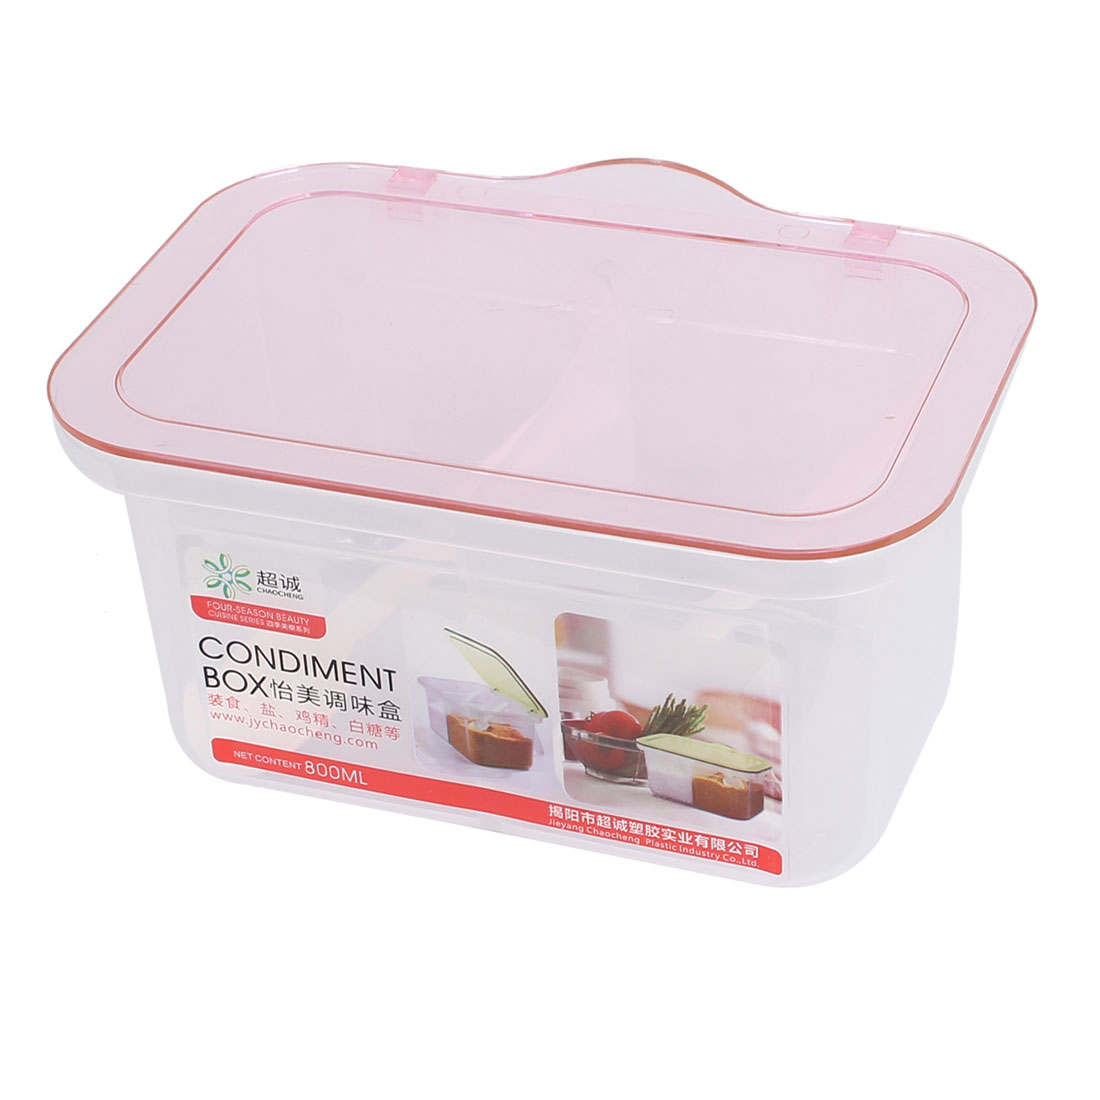 Kitchen Plastic 2 Compartments Condiment Container Holder Tray Box Clear Pink